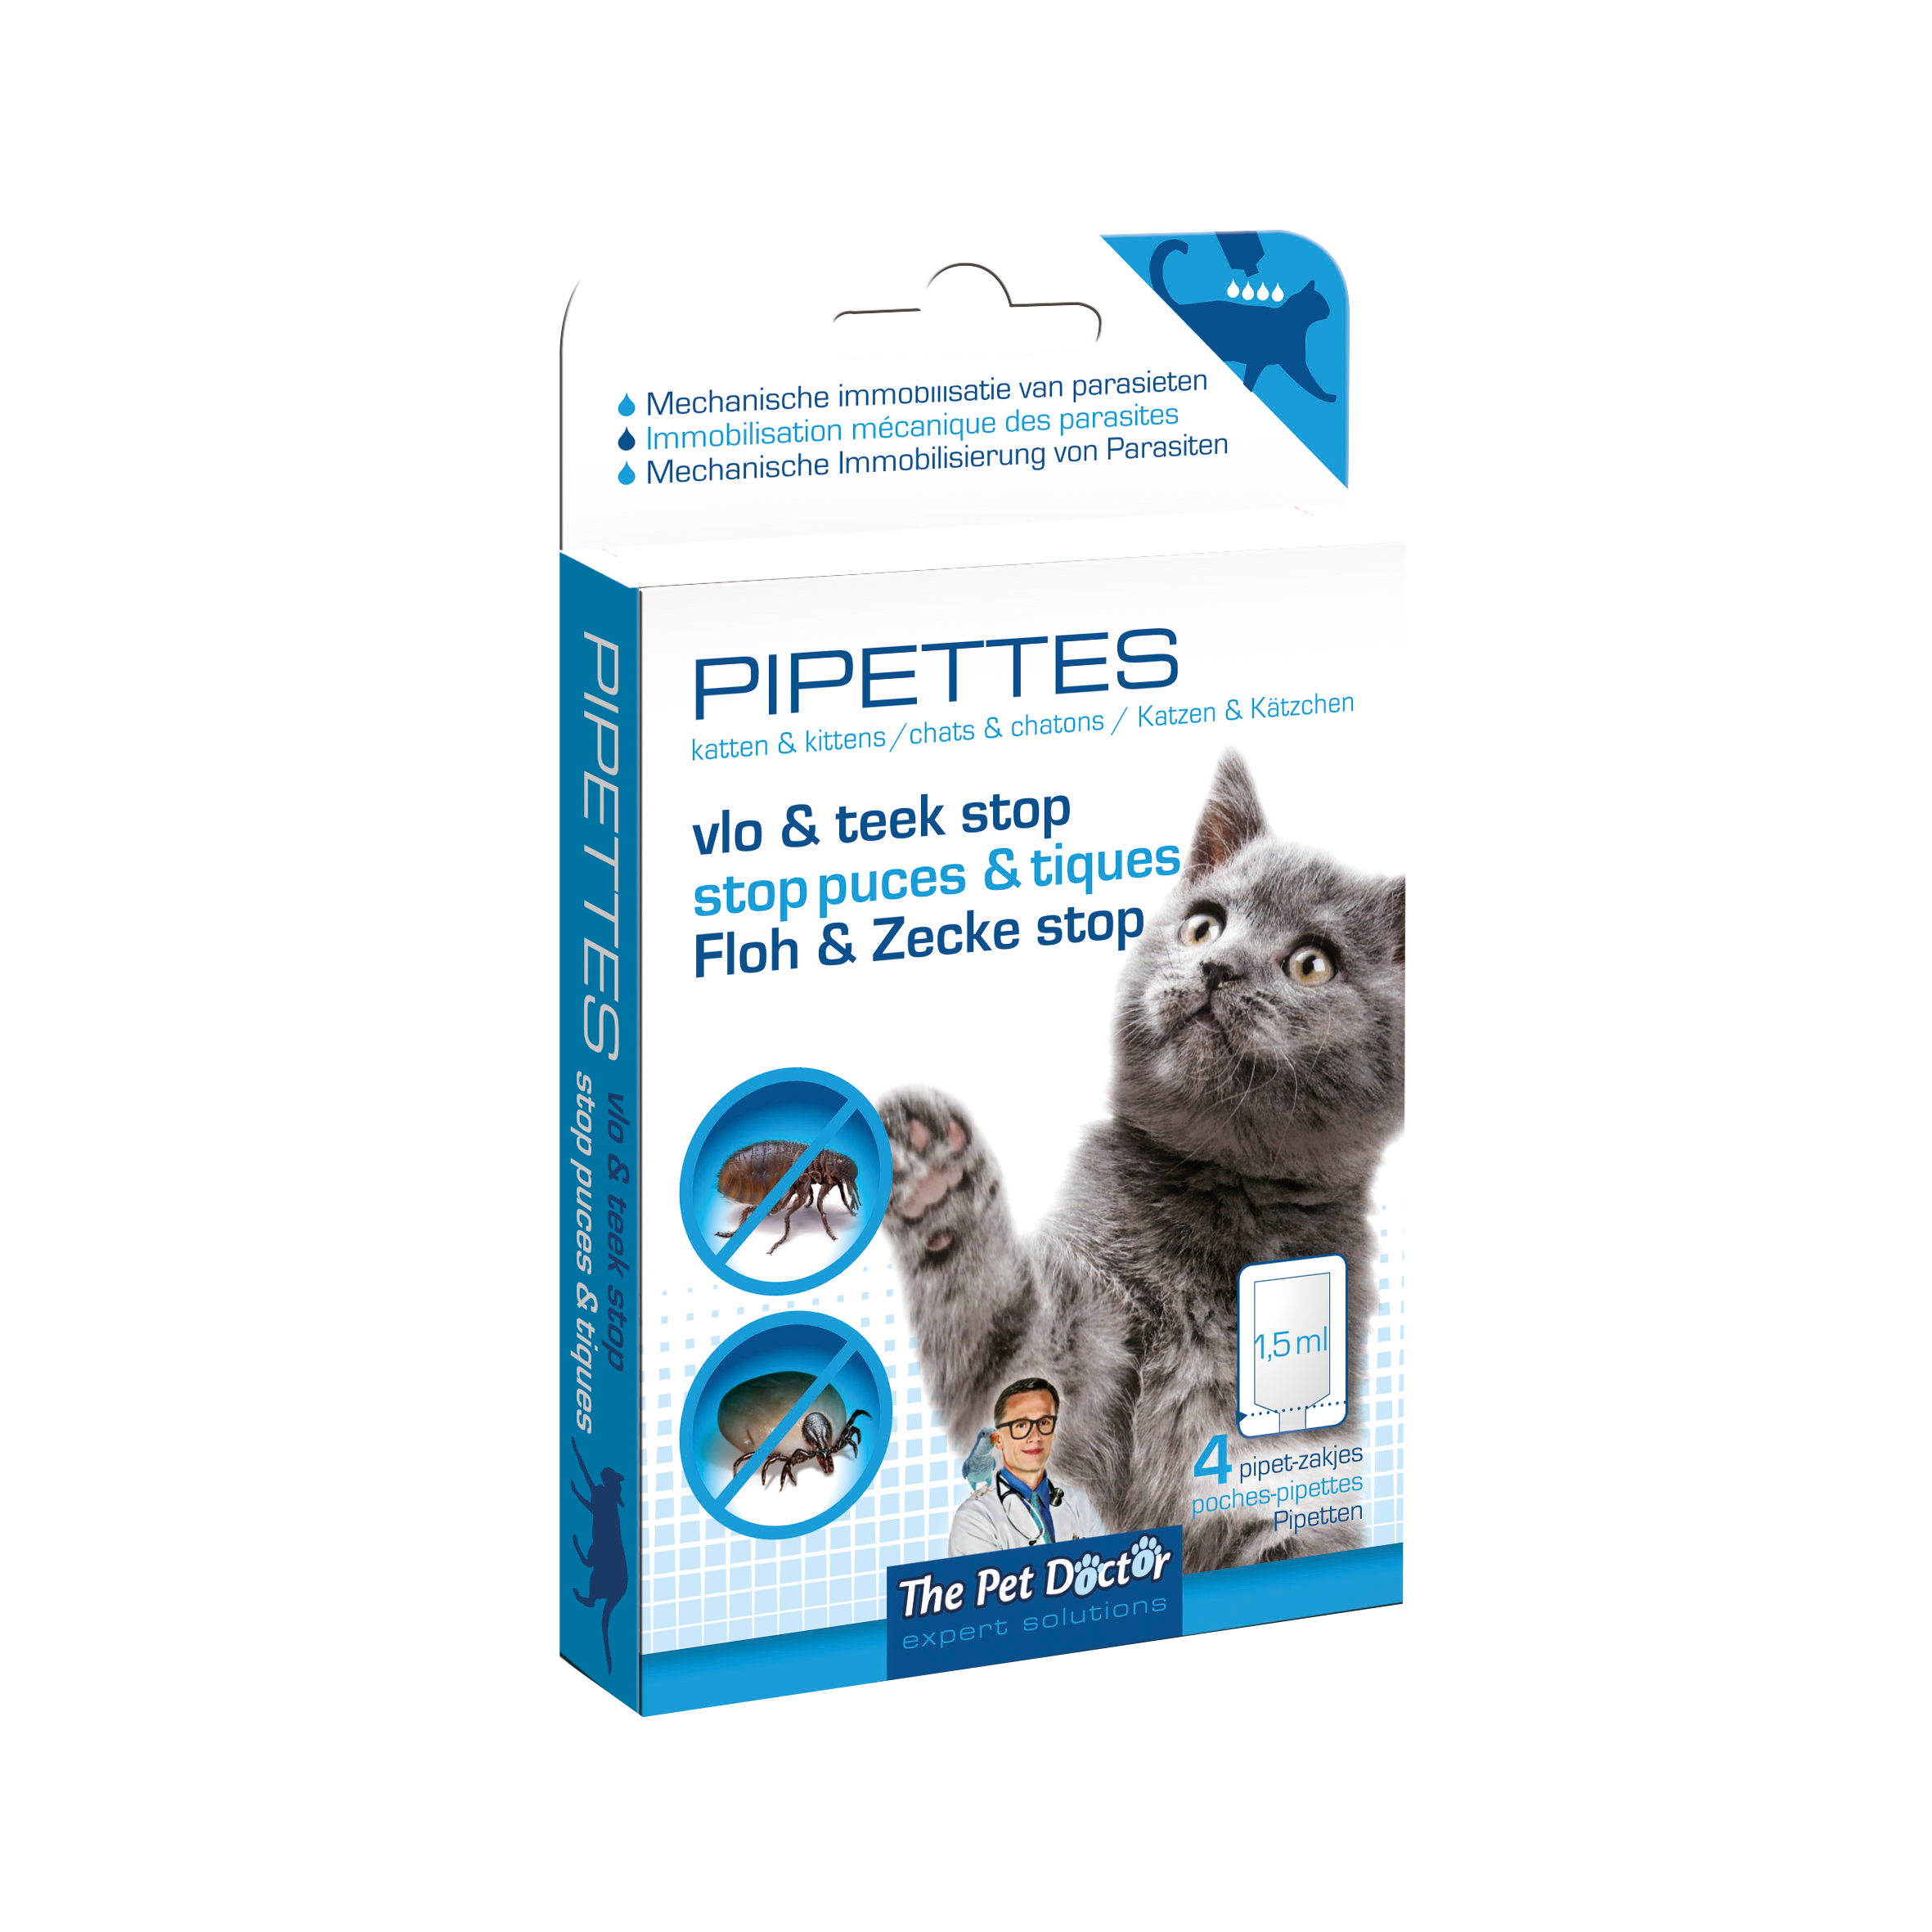 The Pet Doctor Vlo & Teek Stop Pipettes Kat image